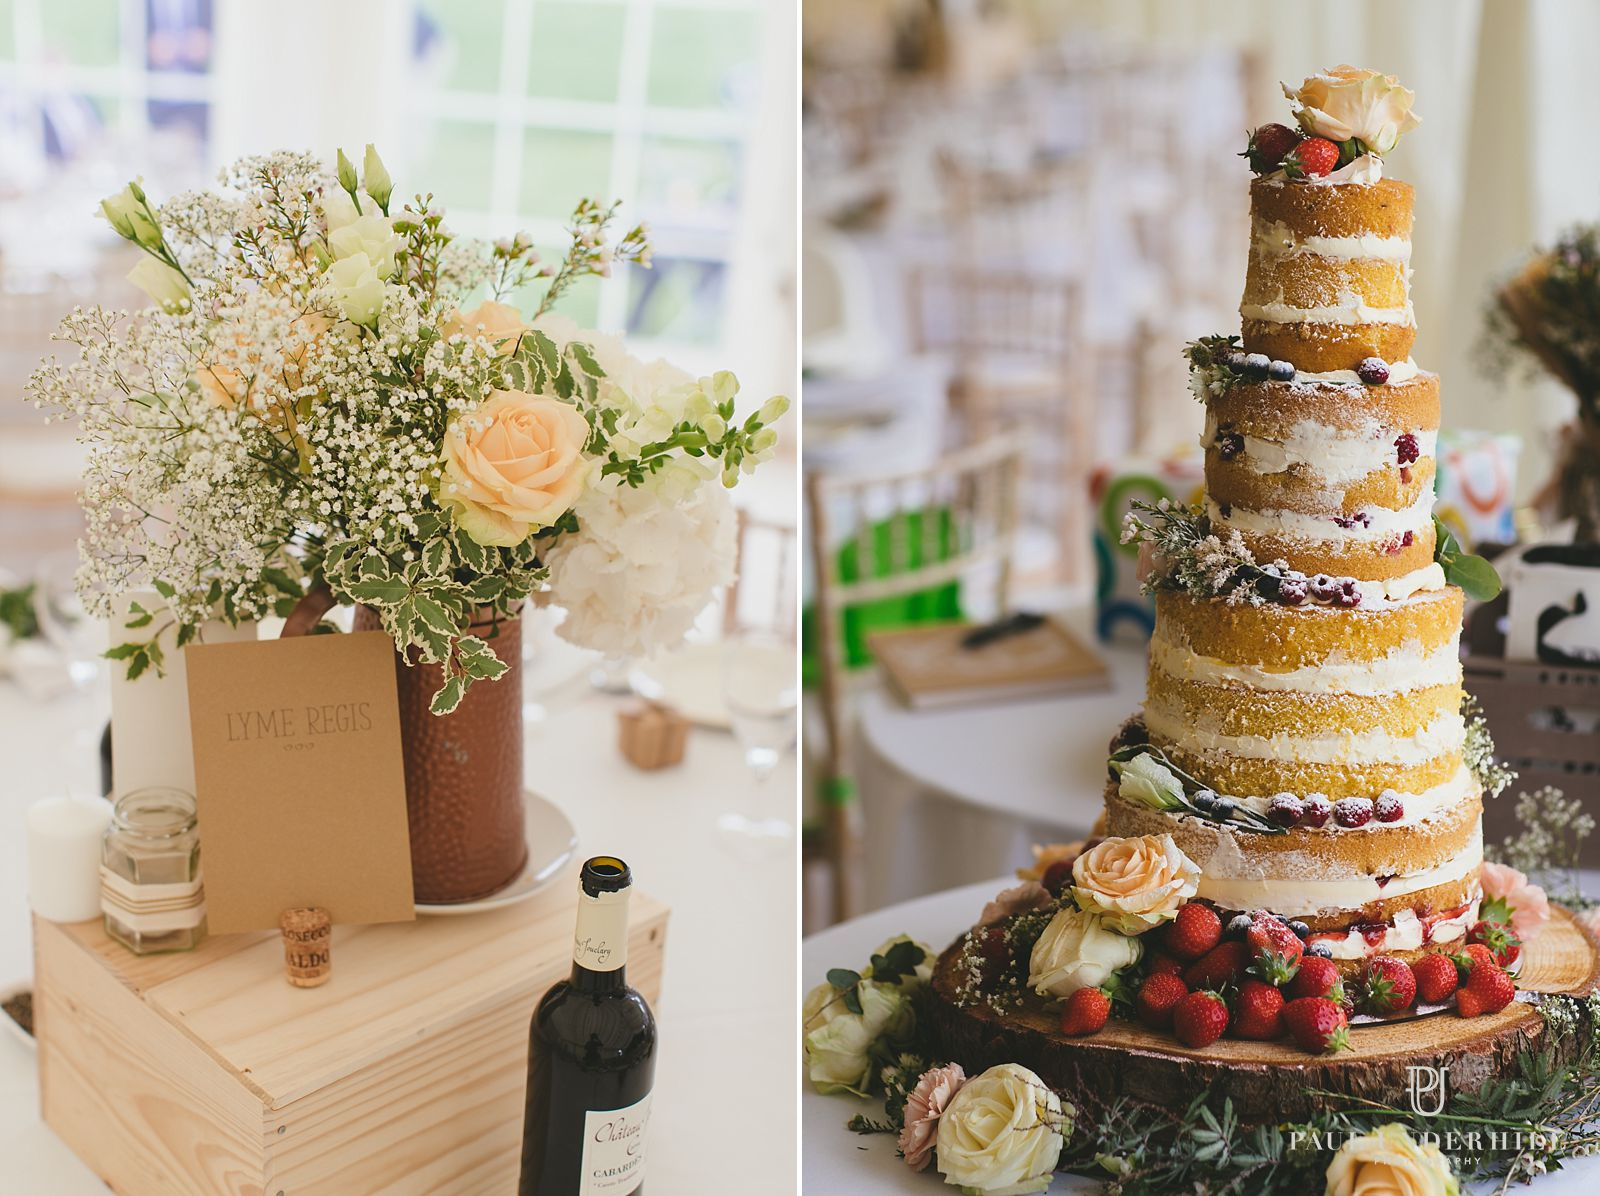 Wedding cake and decorations